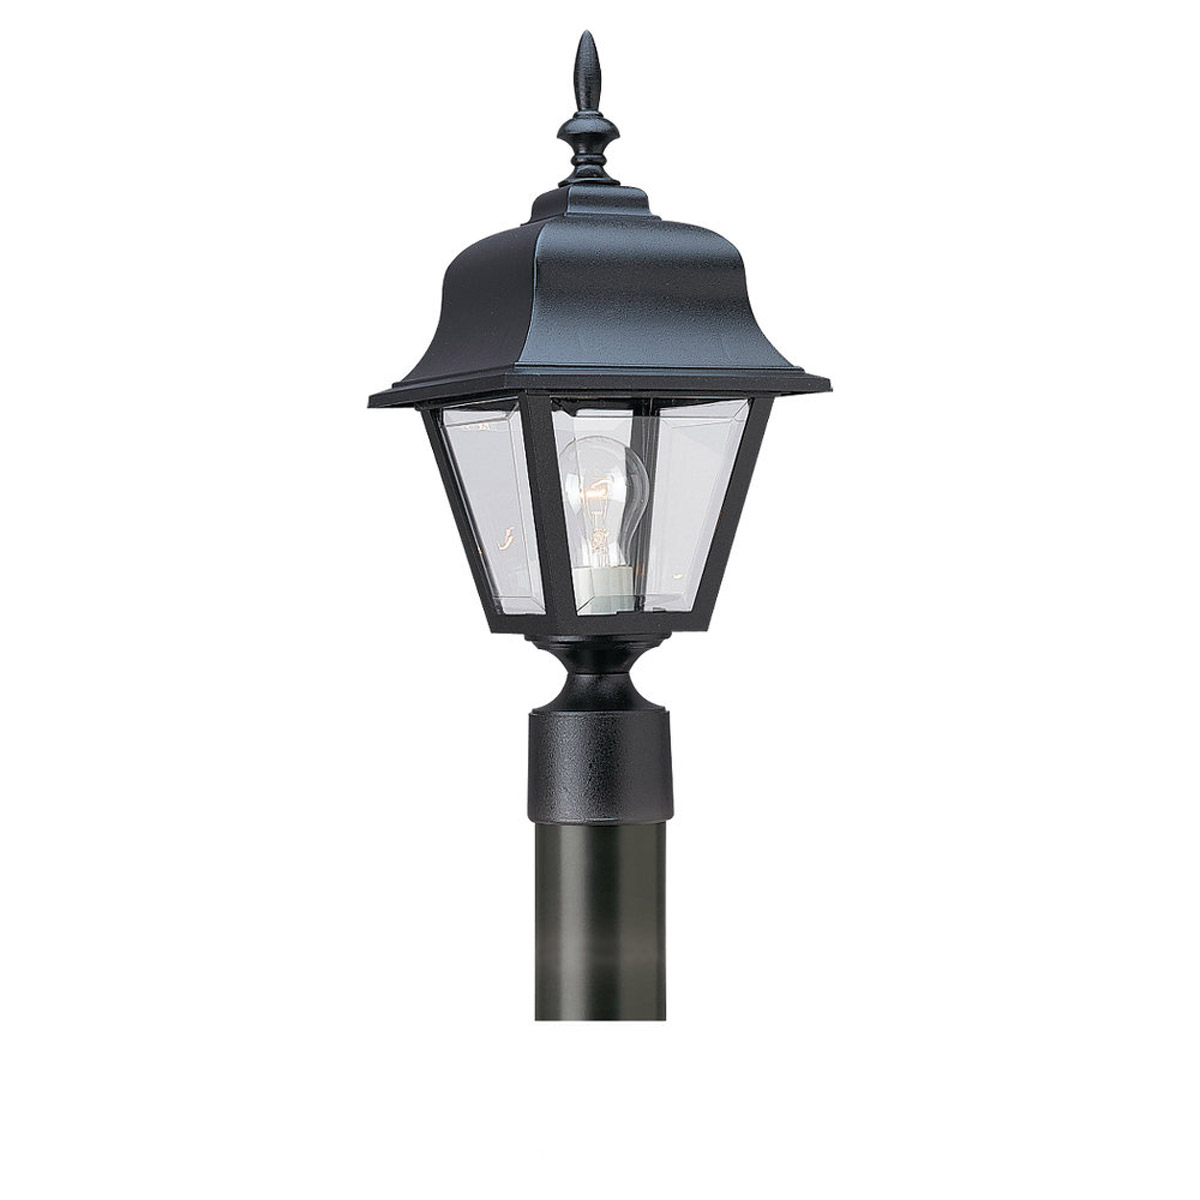 Sea Gull Lighting Polycarb Painted Lanterns 1 Light Outdoor Post Lantern in Black 8255-12